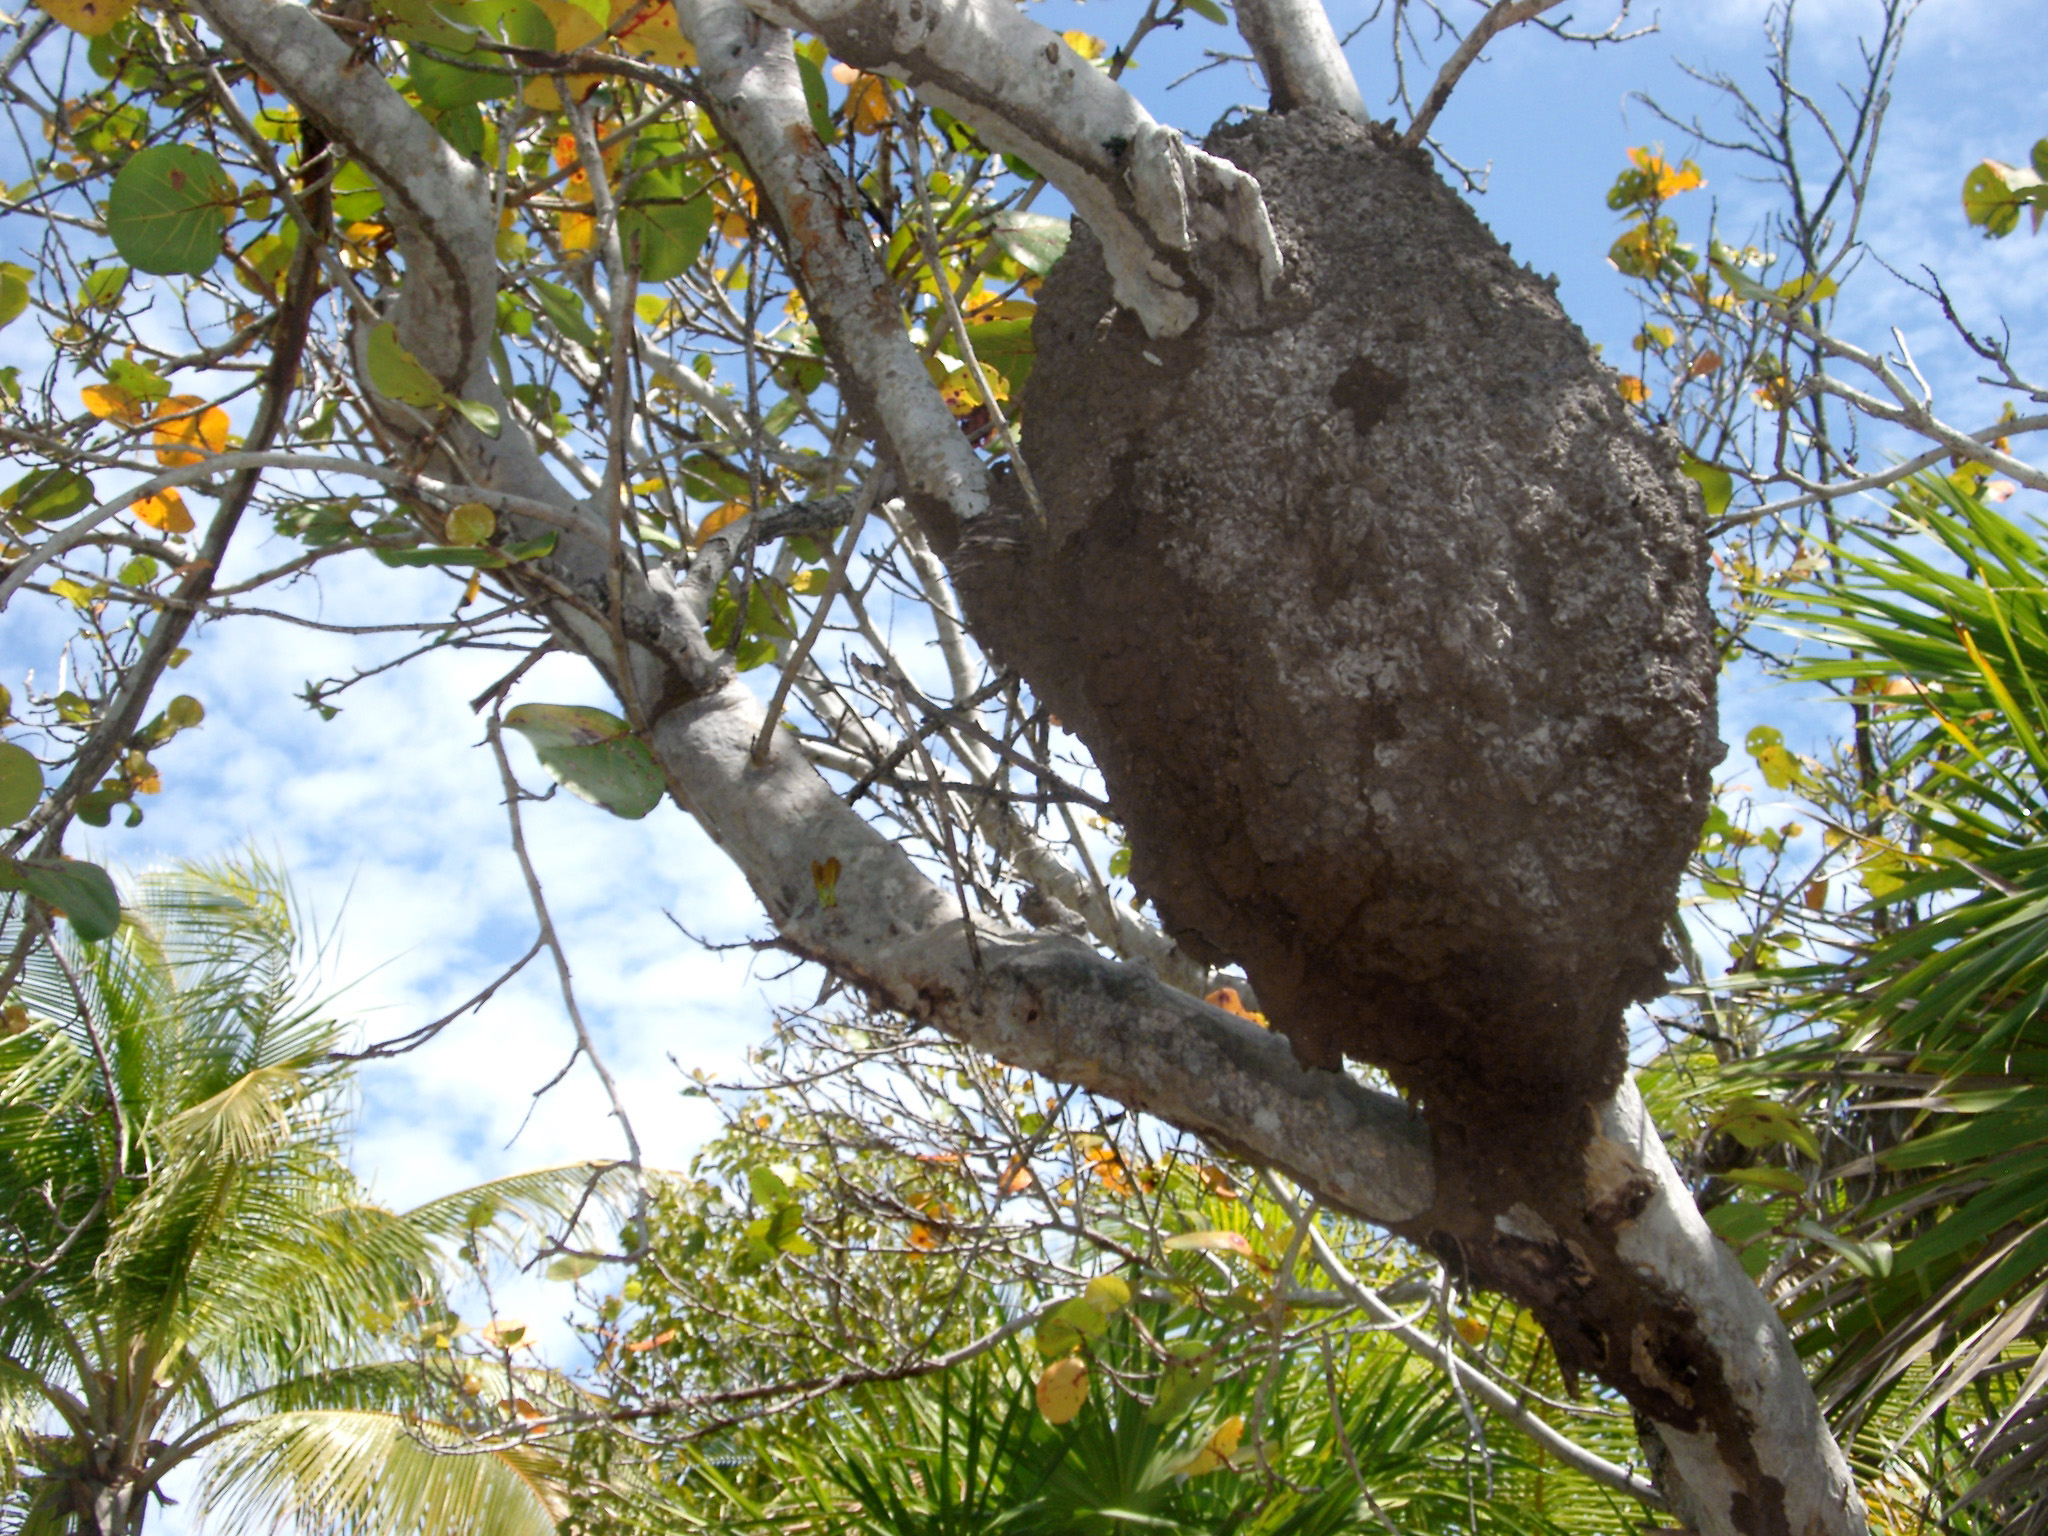 Large mud structure of a termite nest in a tree in the jungle in Mexico